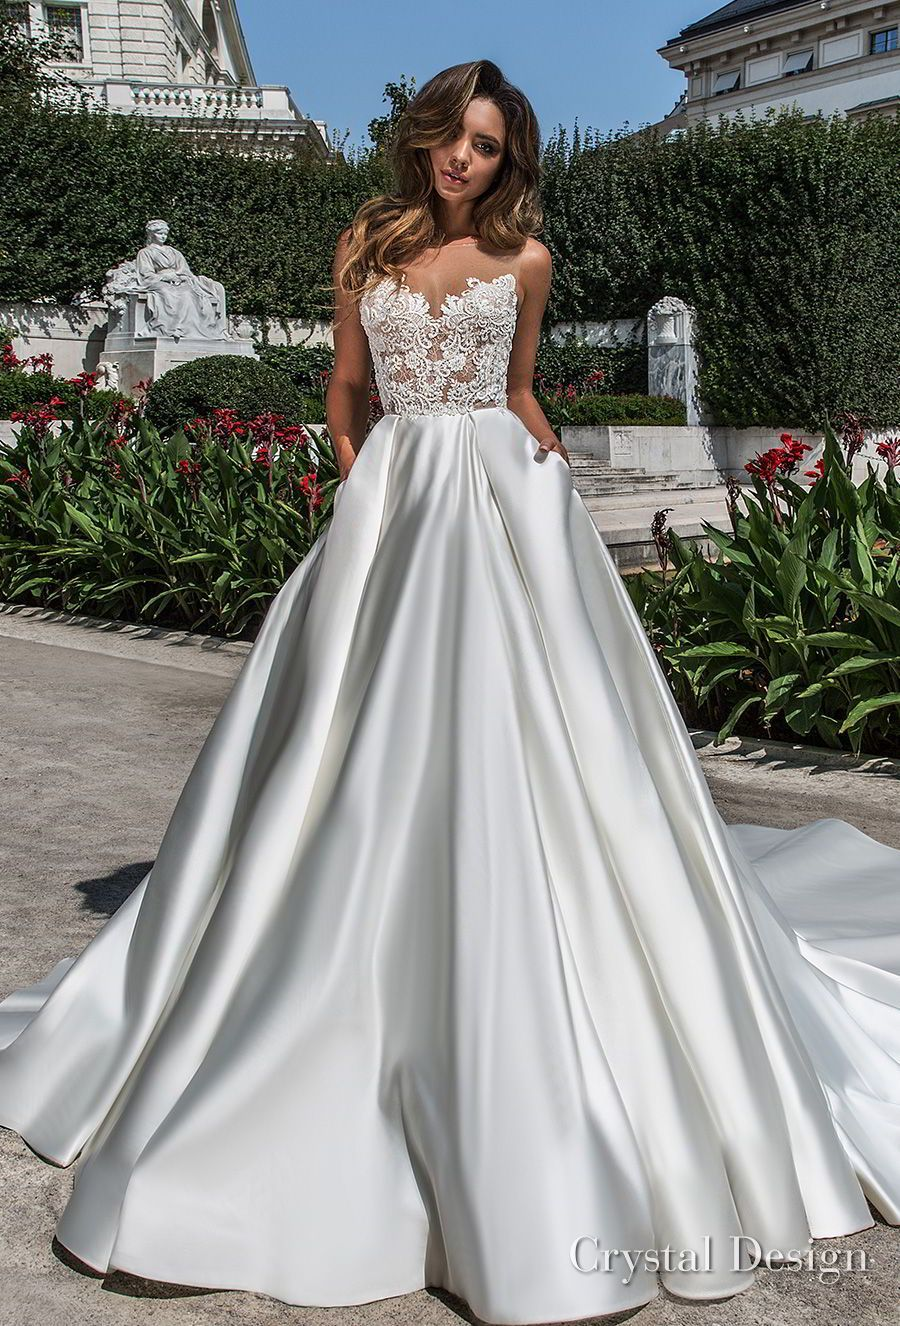 aa6997512166 crystal design 2018 sleeveless illusion boat sweetheart neckline heavily  embellished bodice satin romantic skirt a line